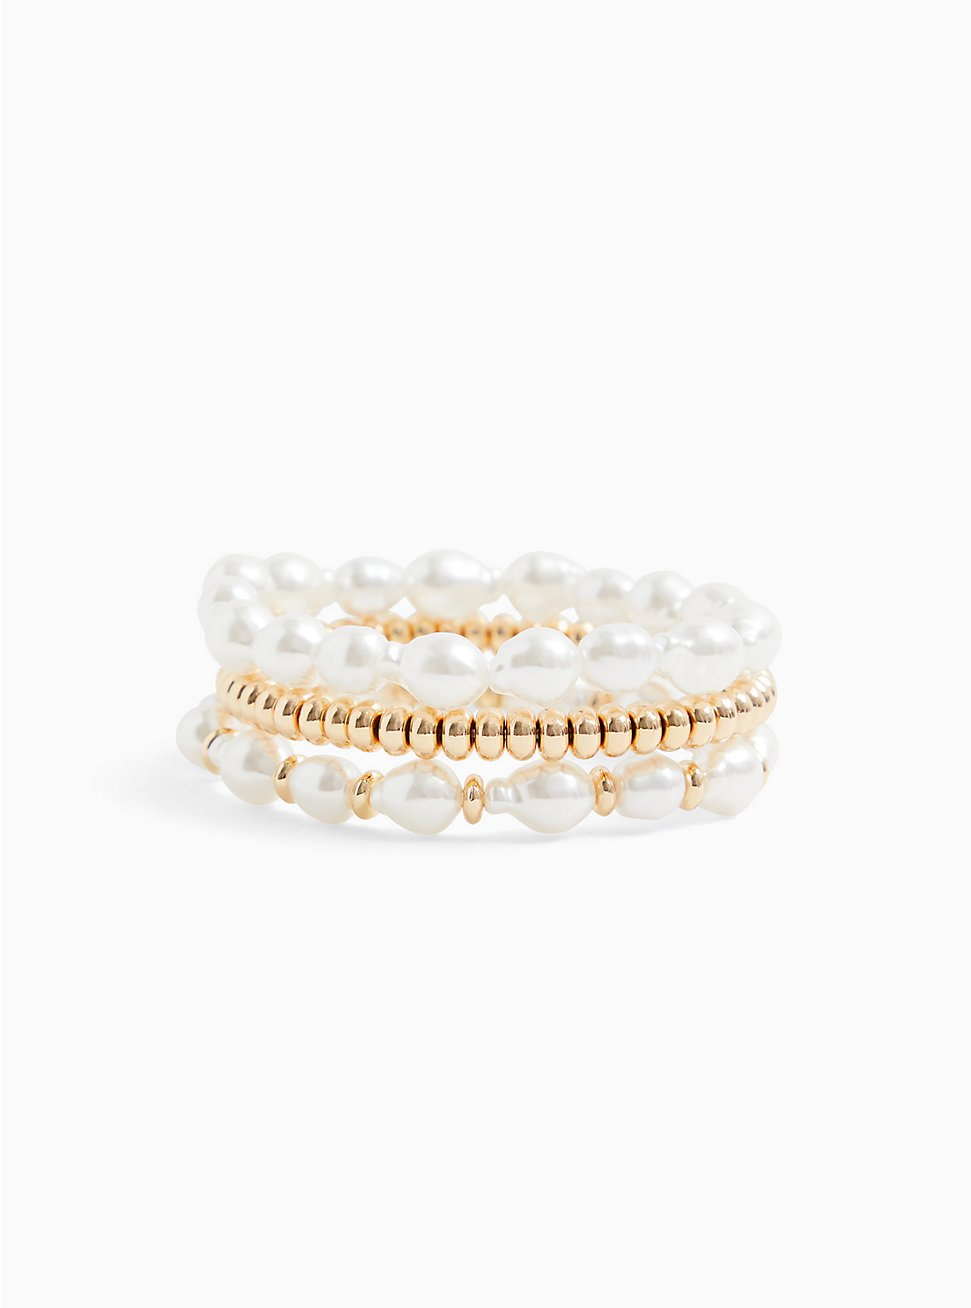 Gold-Tone & Faux Pearl Stretch Bracelet Set - Set of 3, BLUSH, hi-res